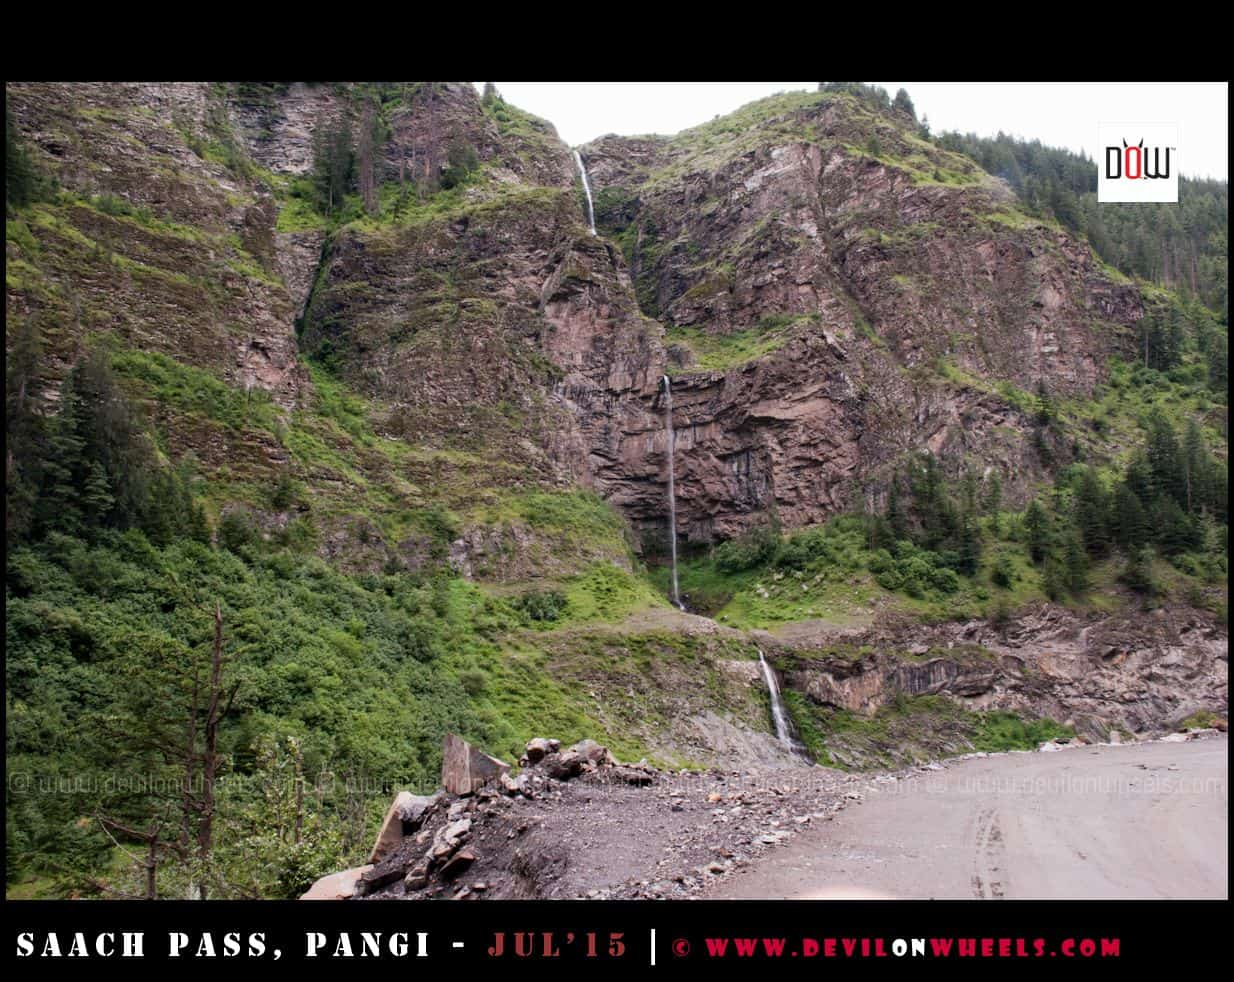 In the land of Waterfalls - Pangi Valley